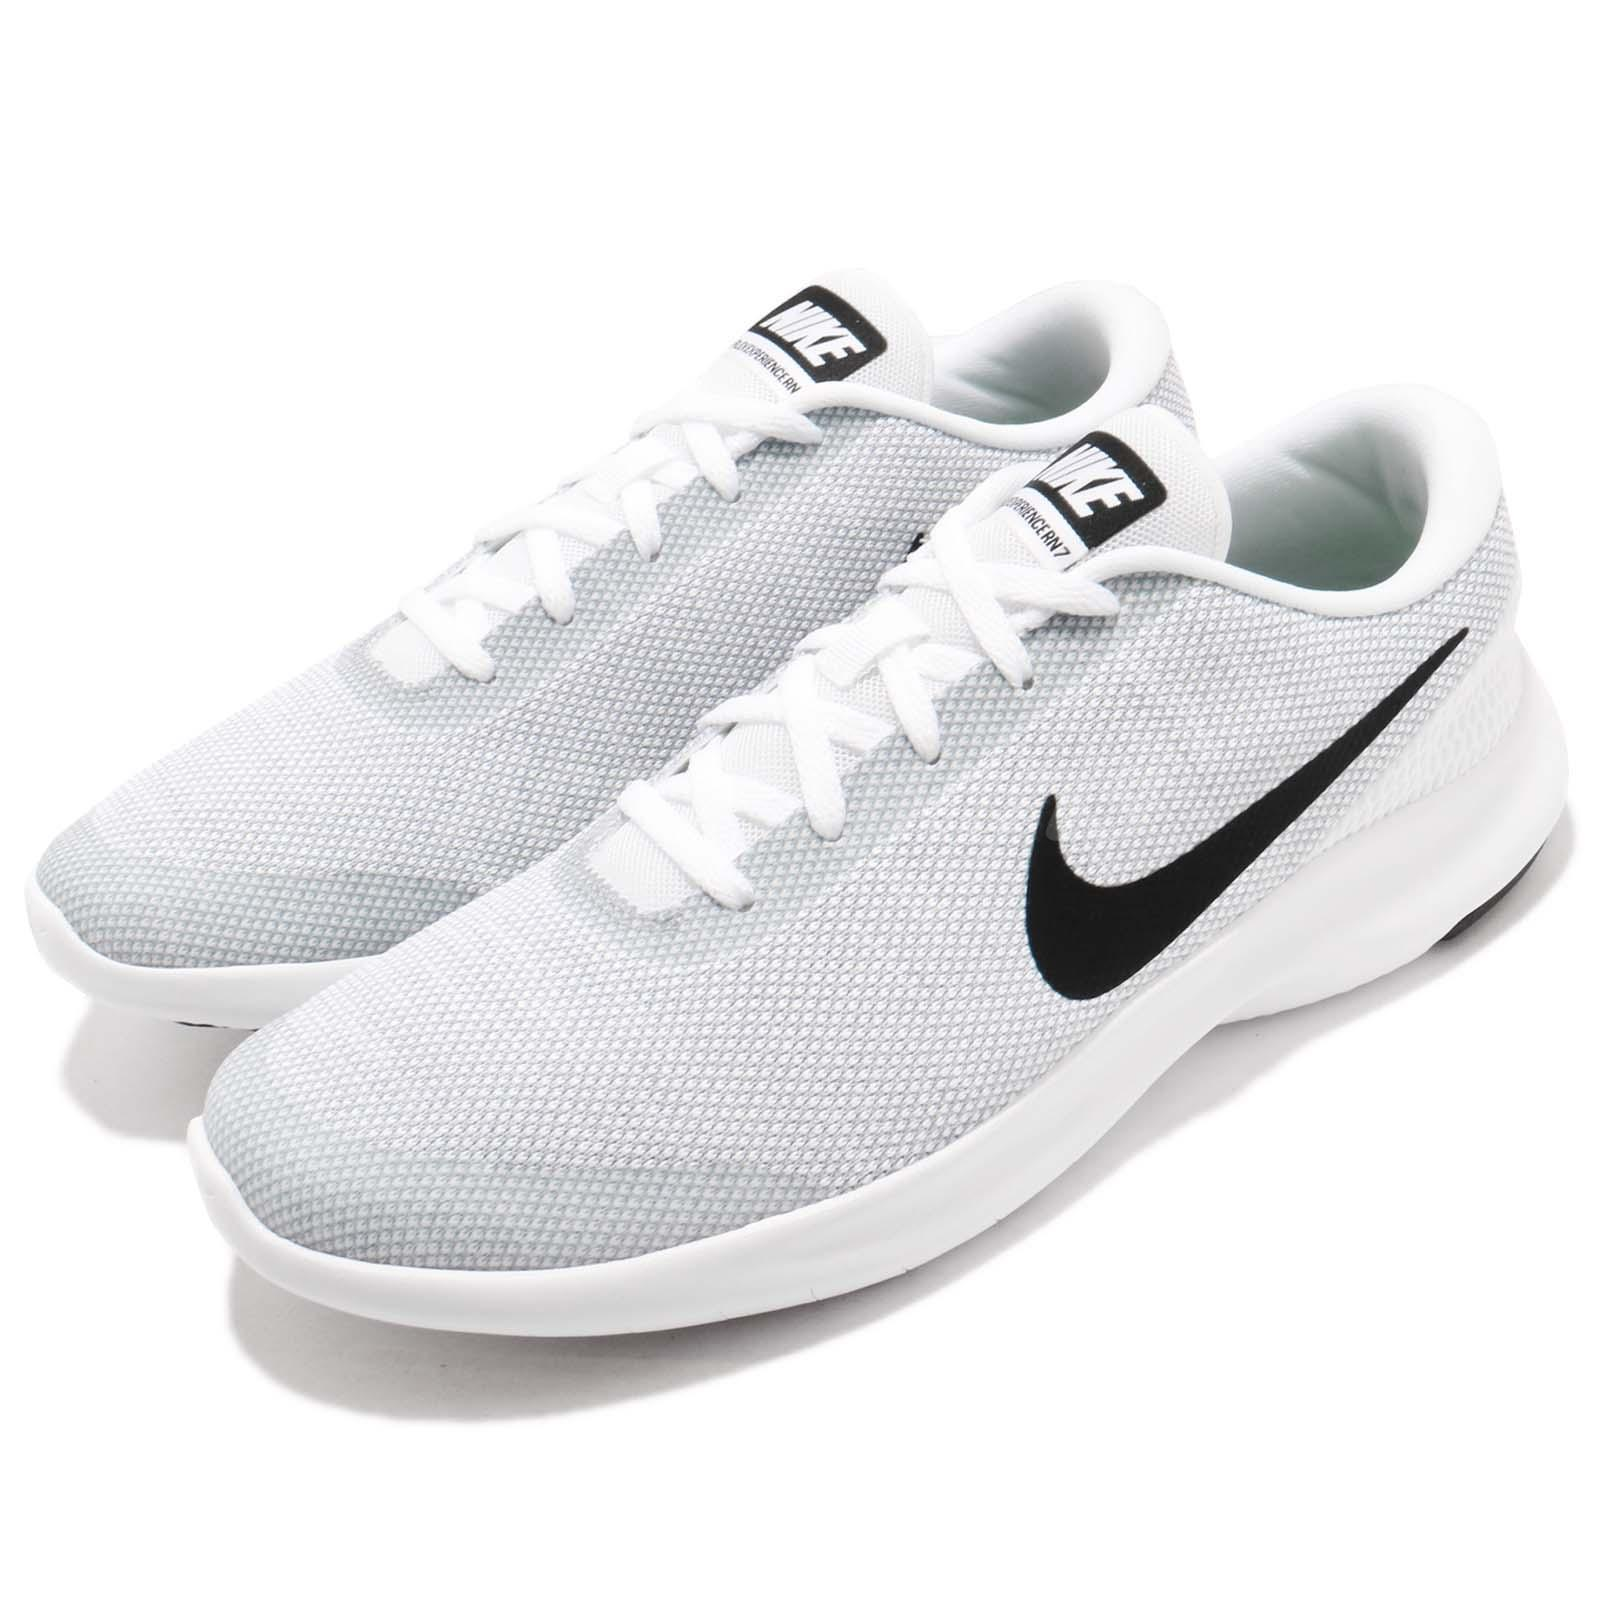 b77994e908e Details about Nike Flex Experience RN 7 VII Run White Black Grey Men Running  Shoes 908985-100